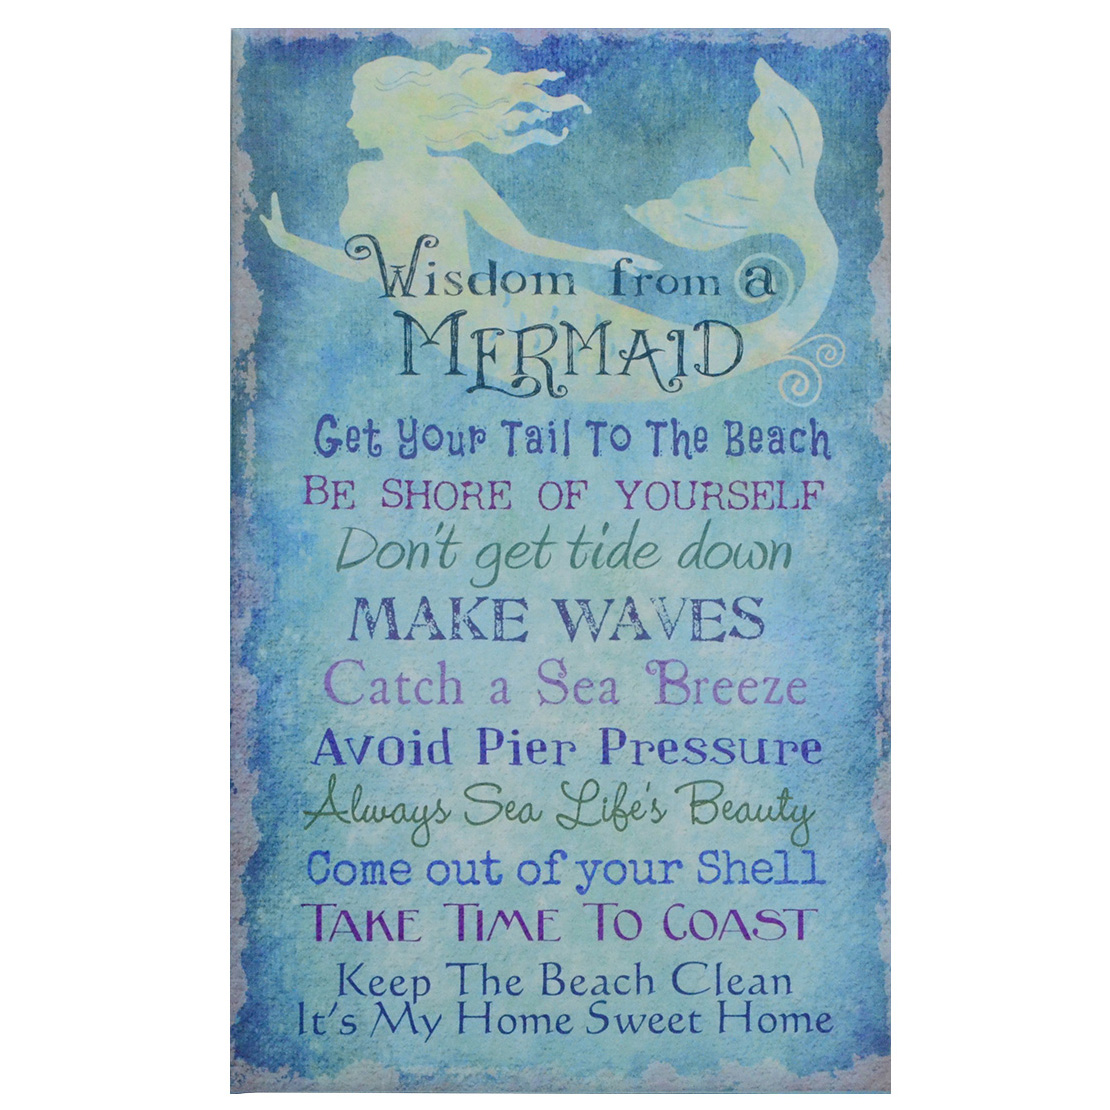 Advice From a Mermaid Blue Canvas Wall Artwork Sign Beach Seaside Coastal Home Decor by Timeless by Design